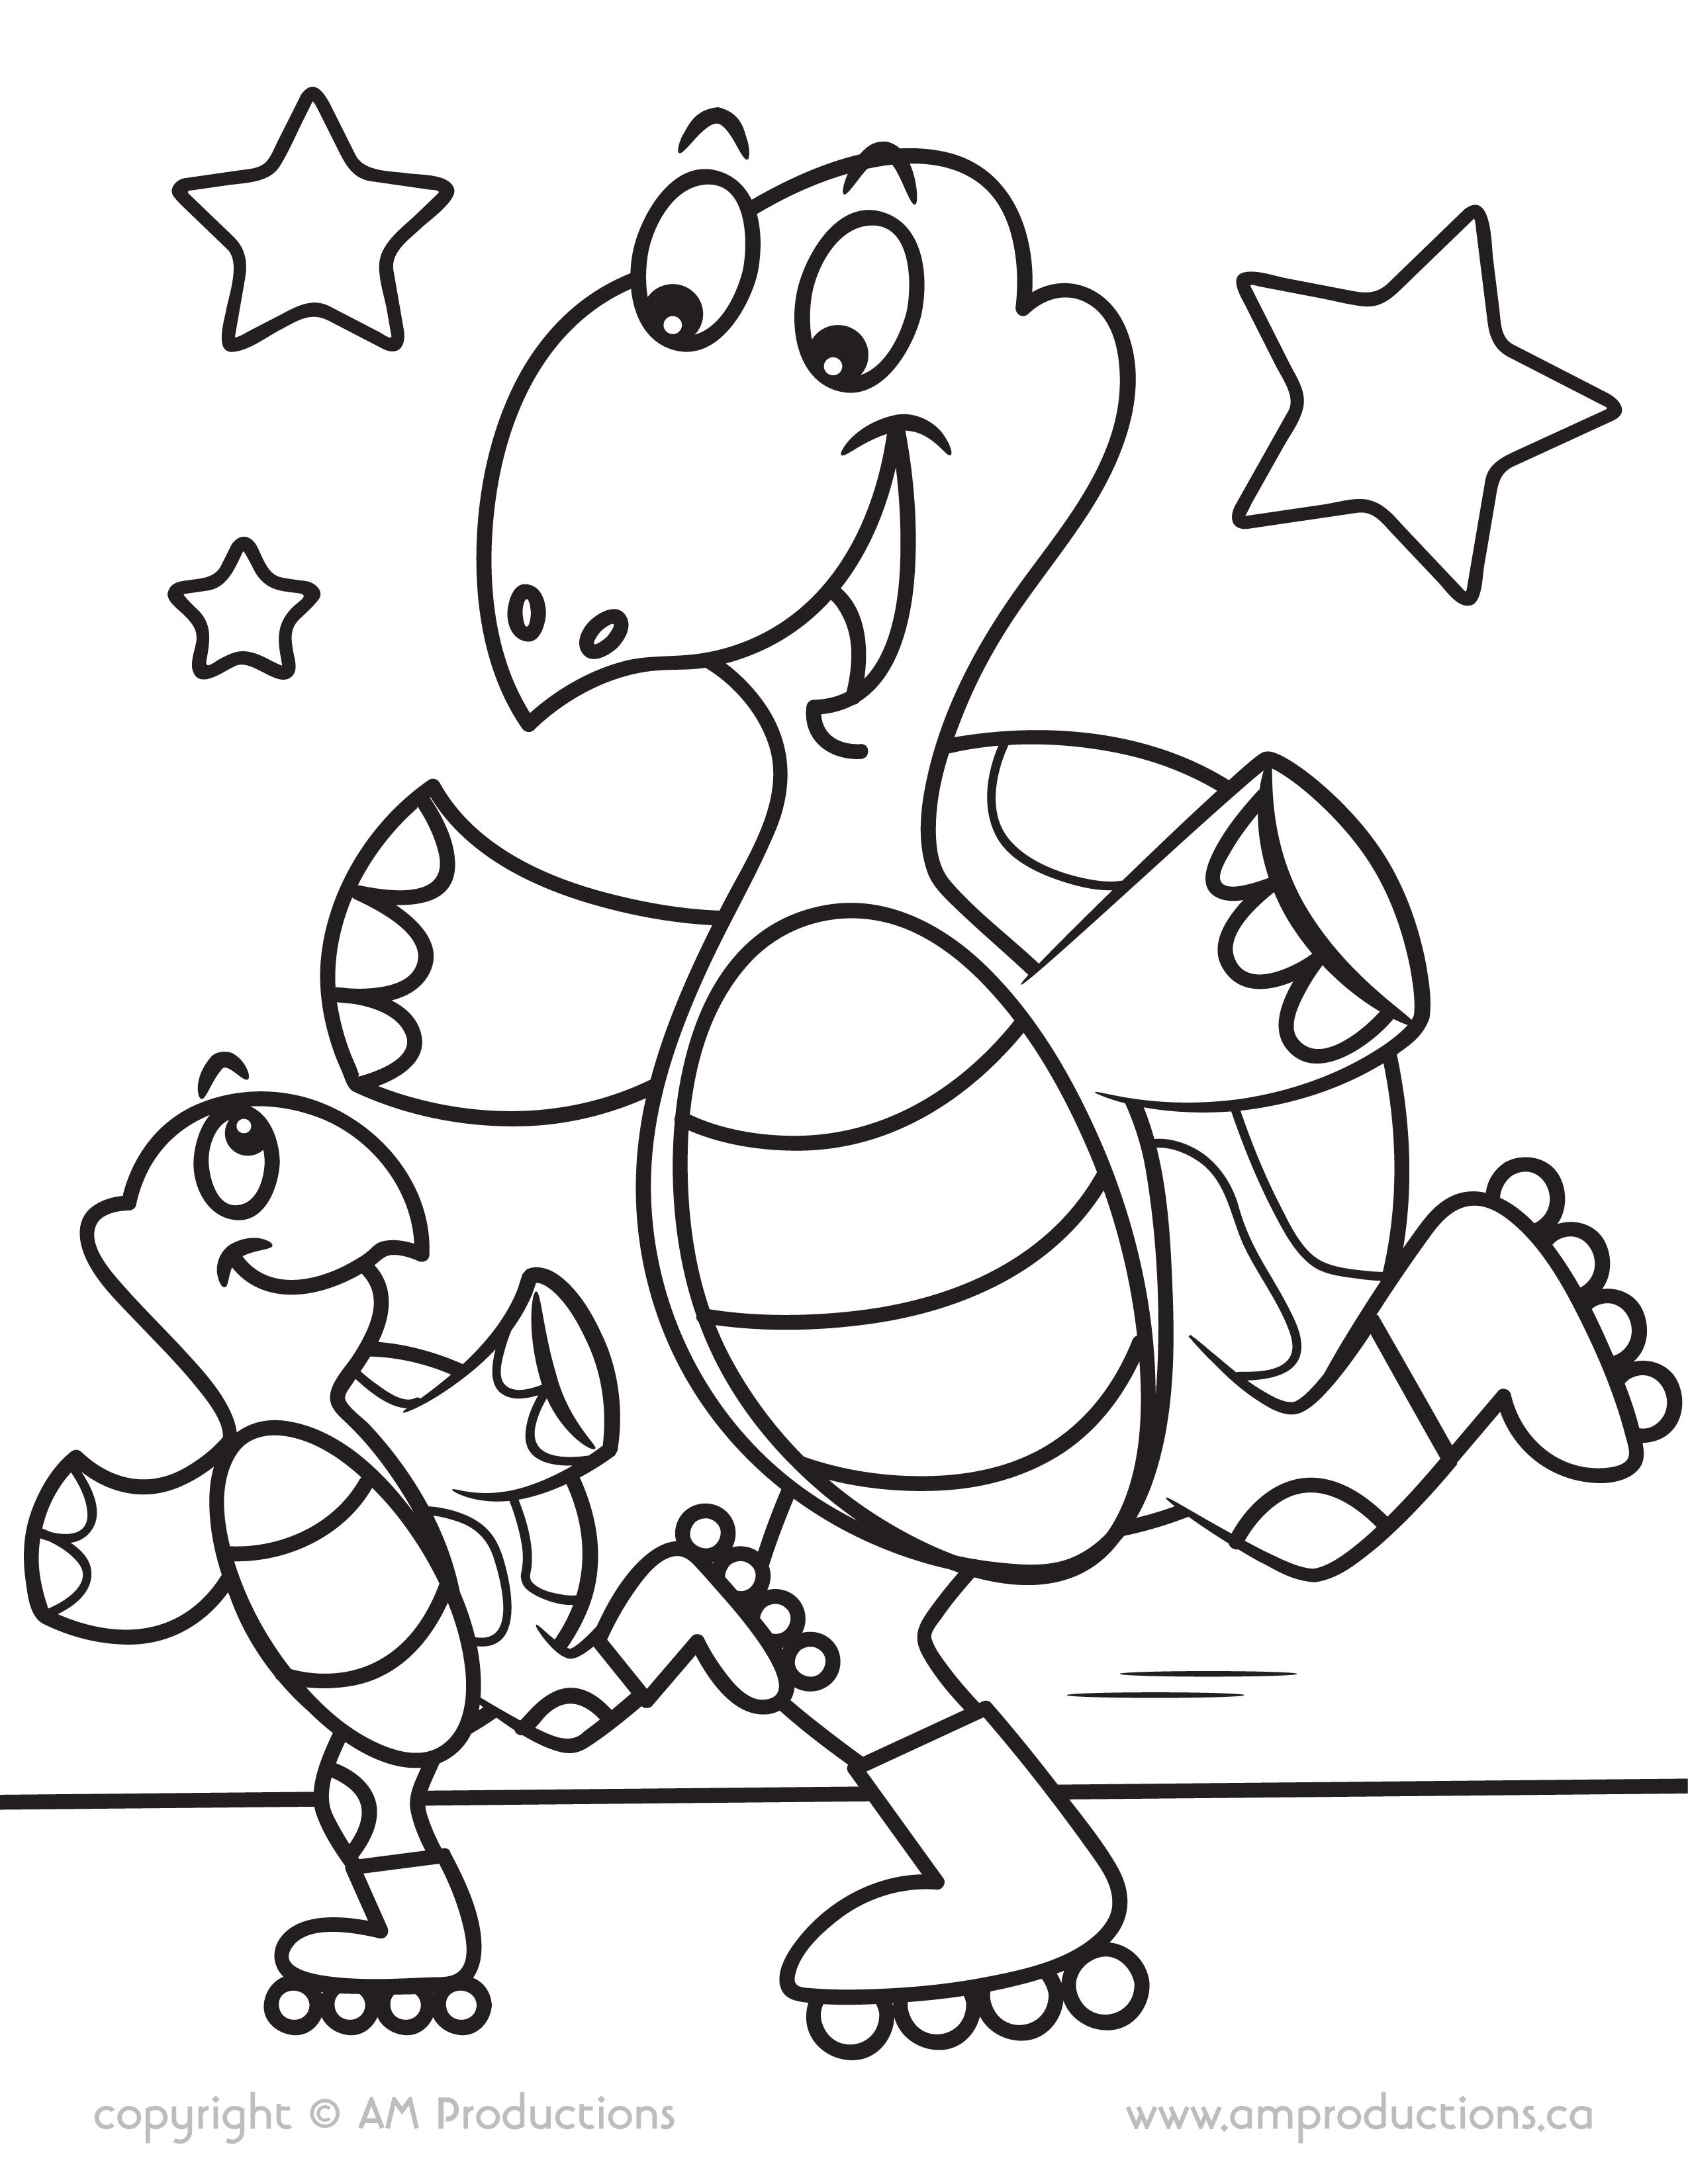 Color book download - A Page From Our Zoo Coloring Book Download It And Color Away Www